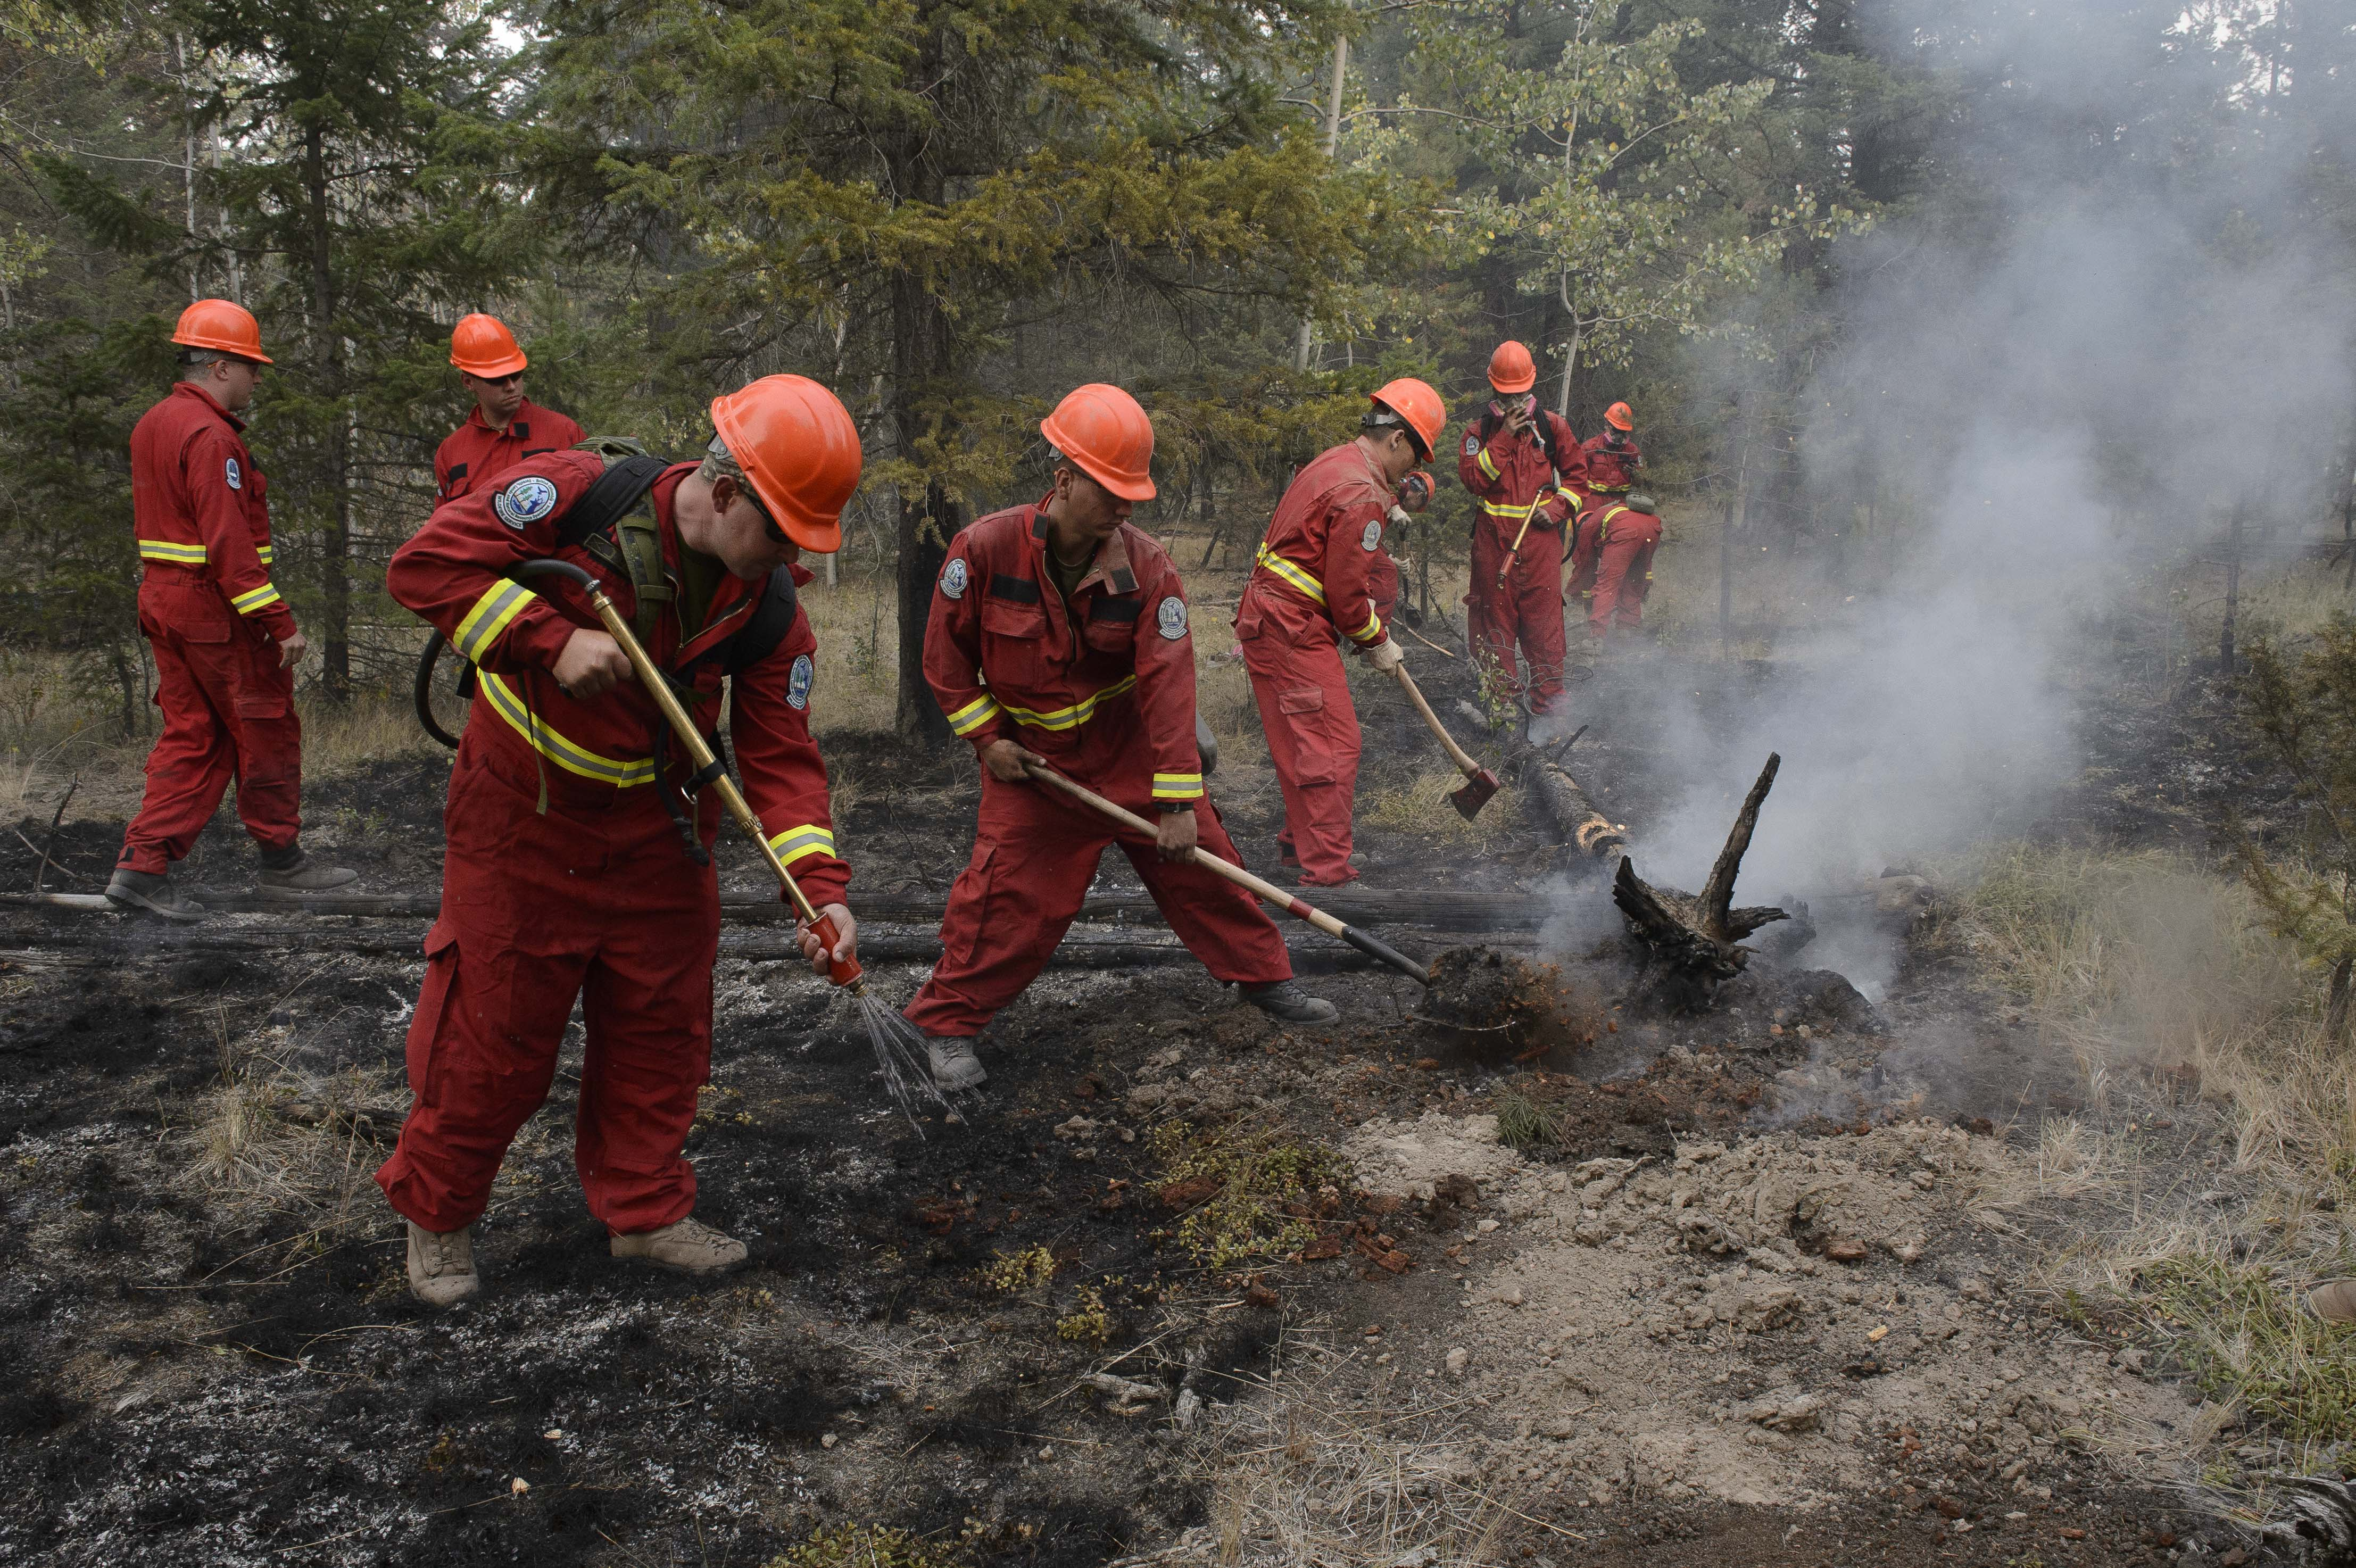 Members of a Domestic Response Company made up of Canadian Army Primary Reserves from all over British Columbia attack a fire hot zone near Riske Creek, BC during OPERATION LENTUS, 17 August, 2017. Photo by: Cpl Blaine Sewell, MARPAC Imaging Services